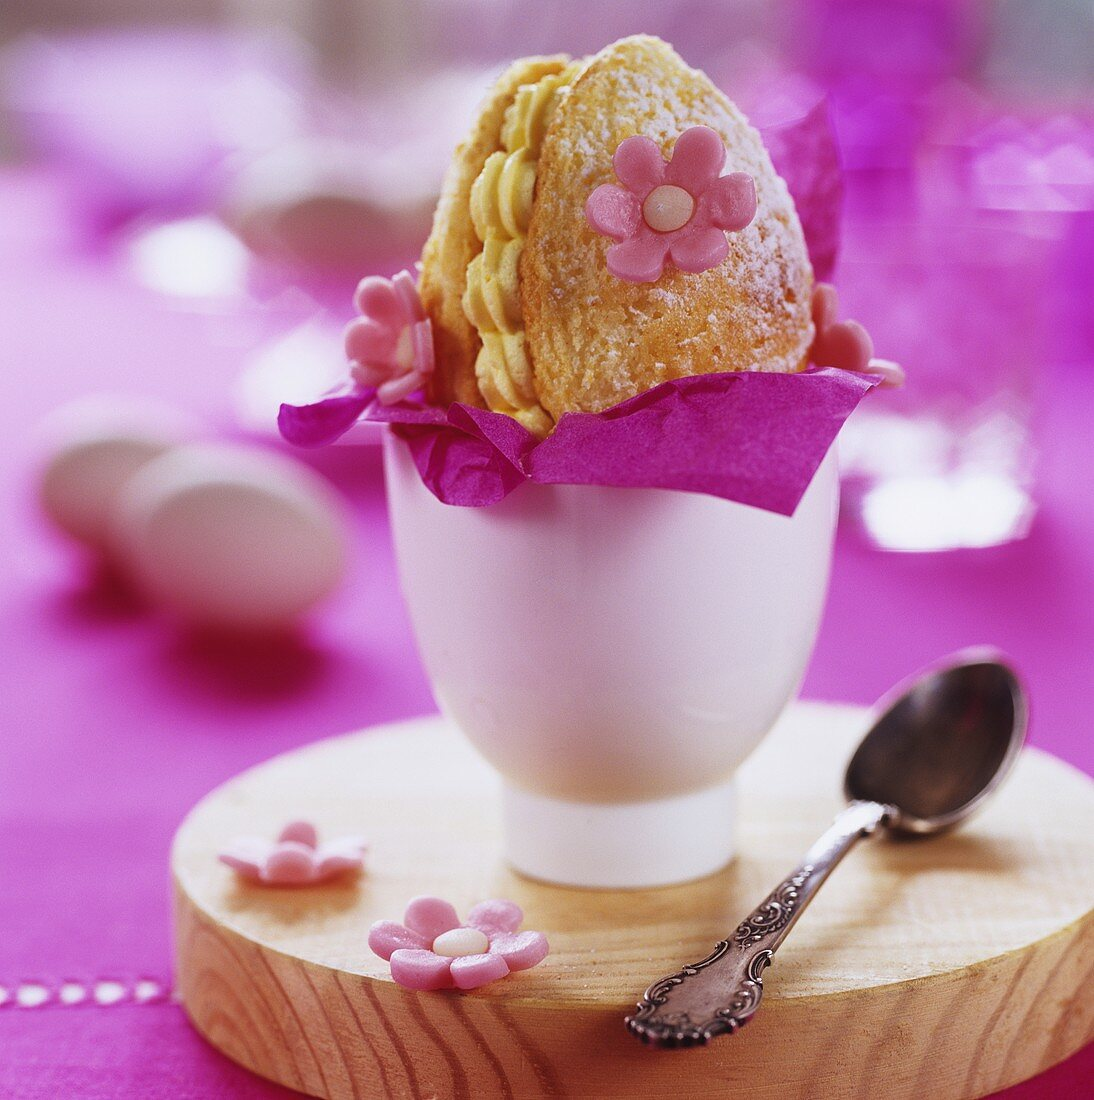 Pastry Easter egg with sugar flowers